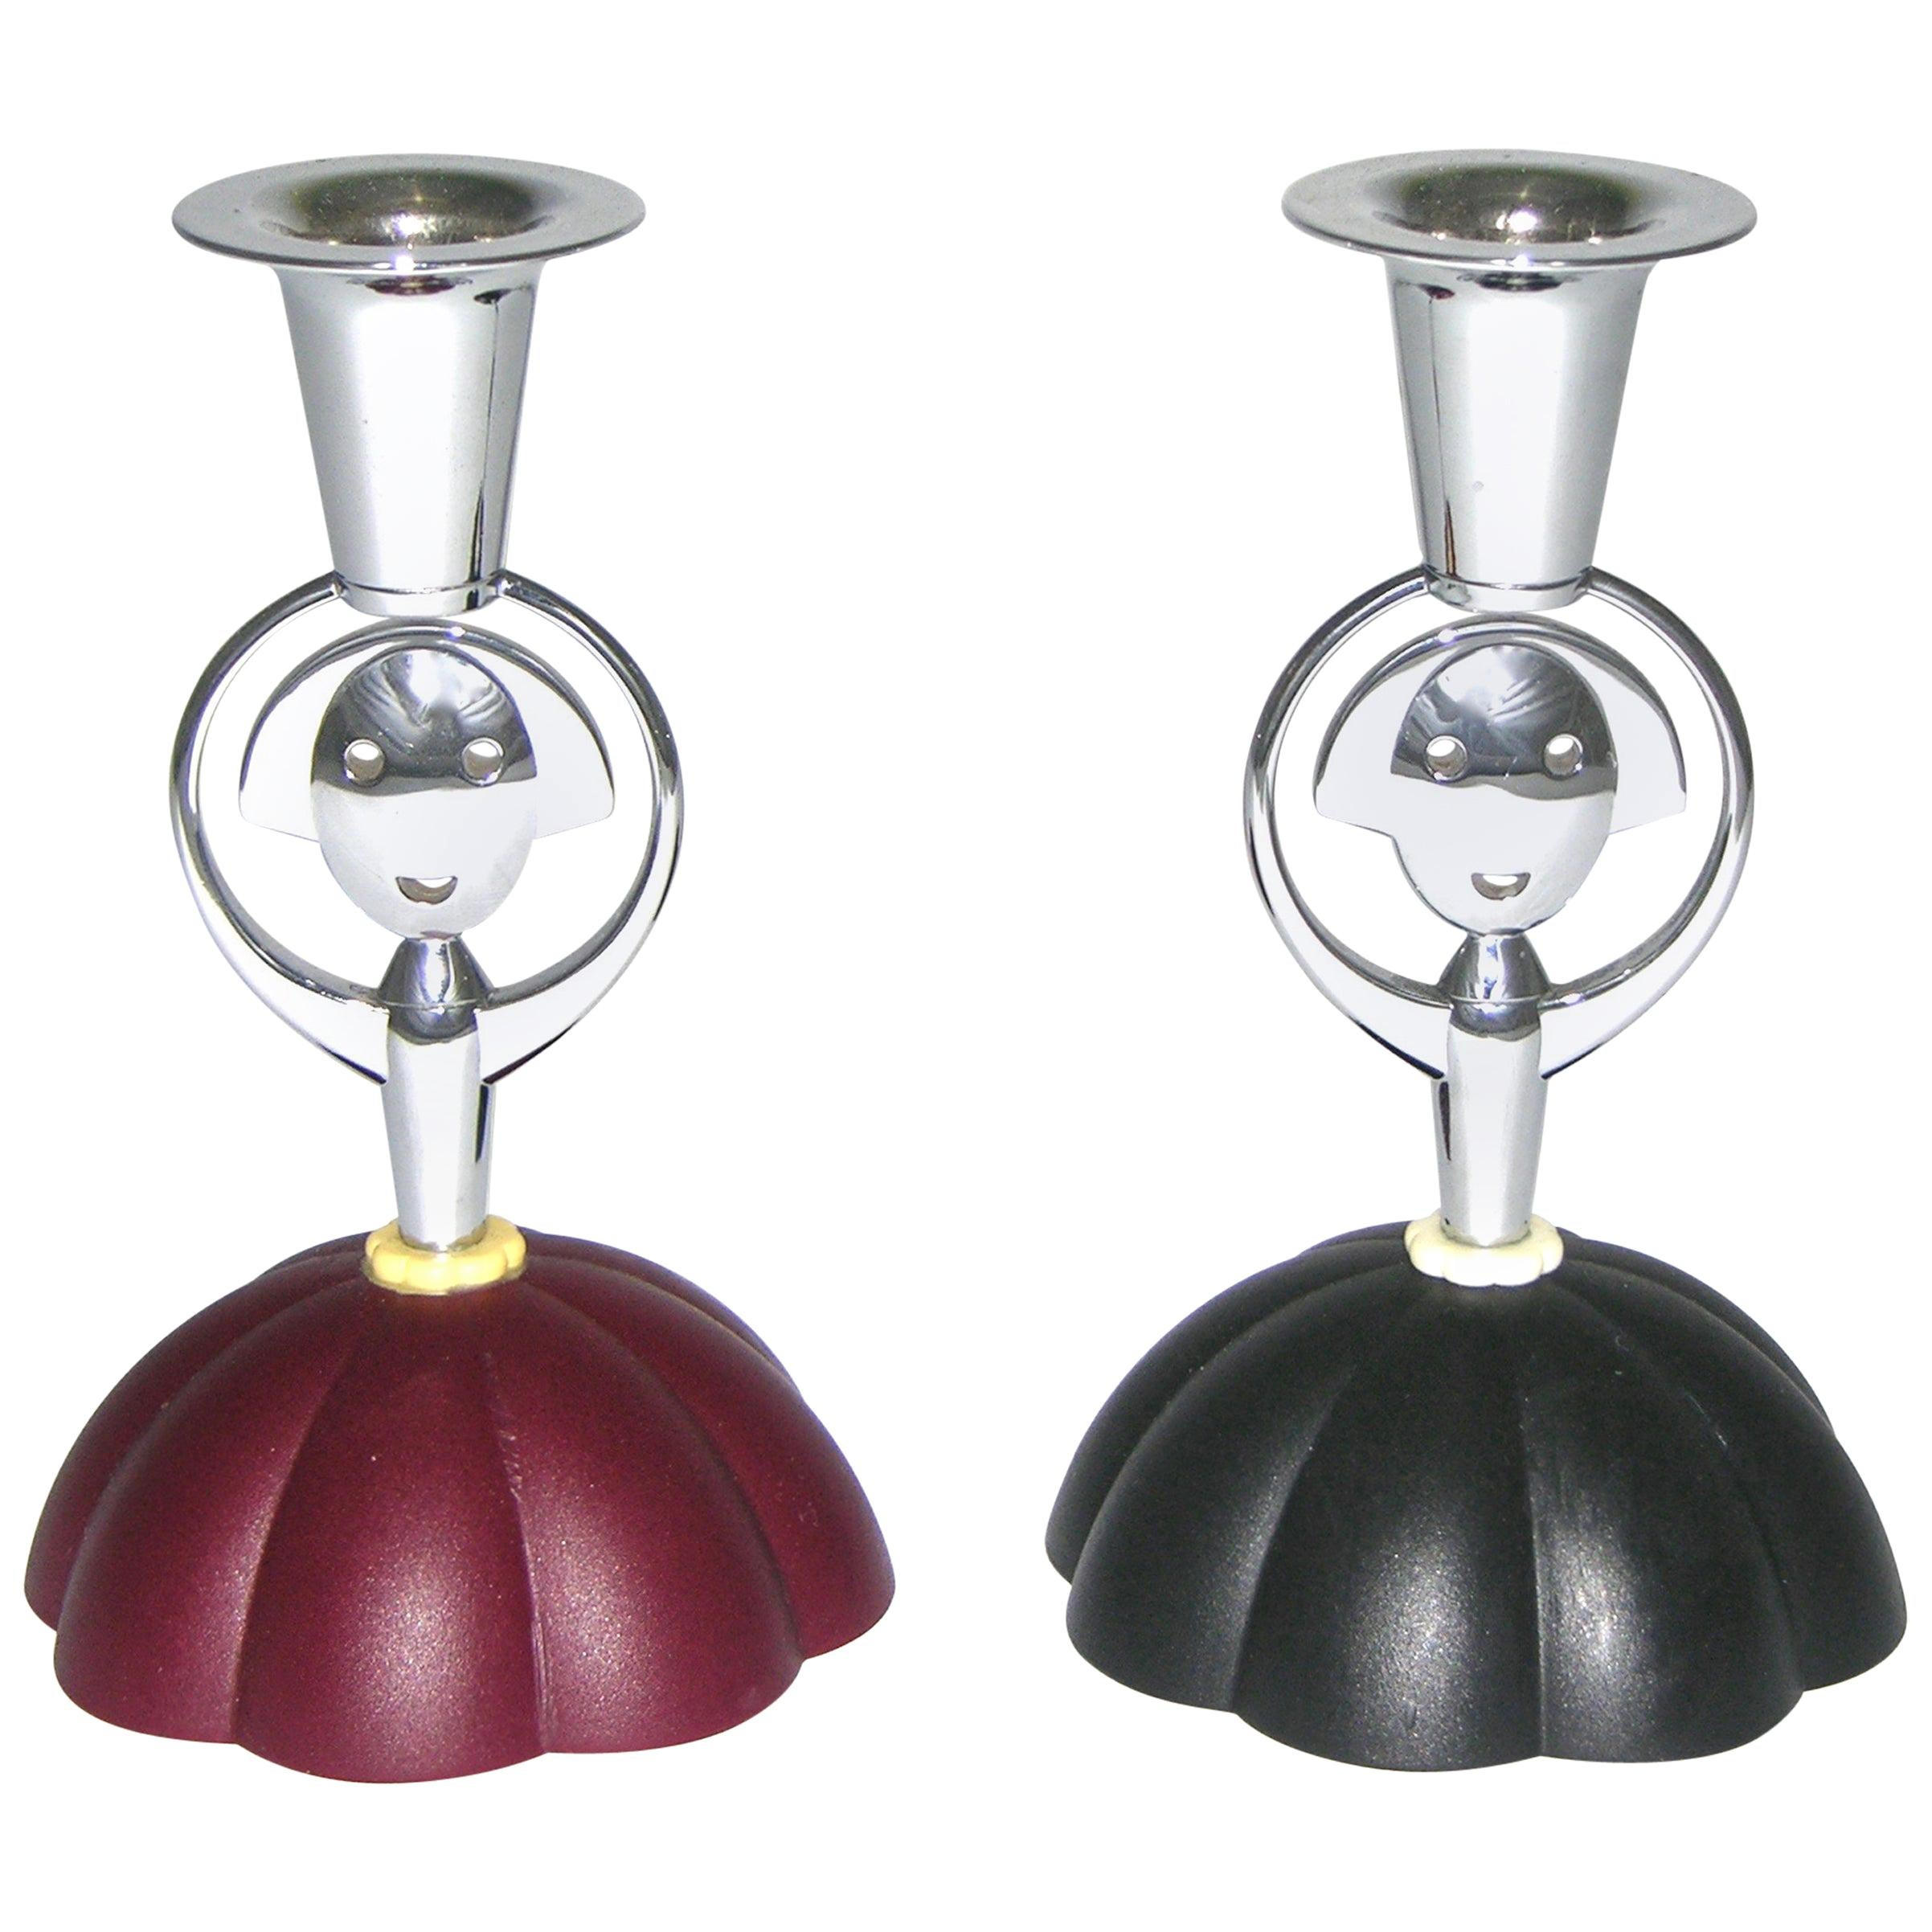 Alessi Alessandro Mendini 1999 Italian Pair of Red and Blue Chrome Candlesticks